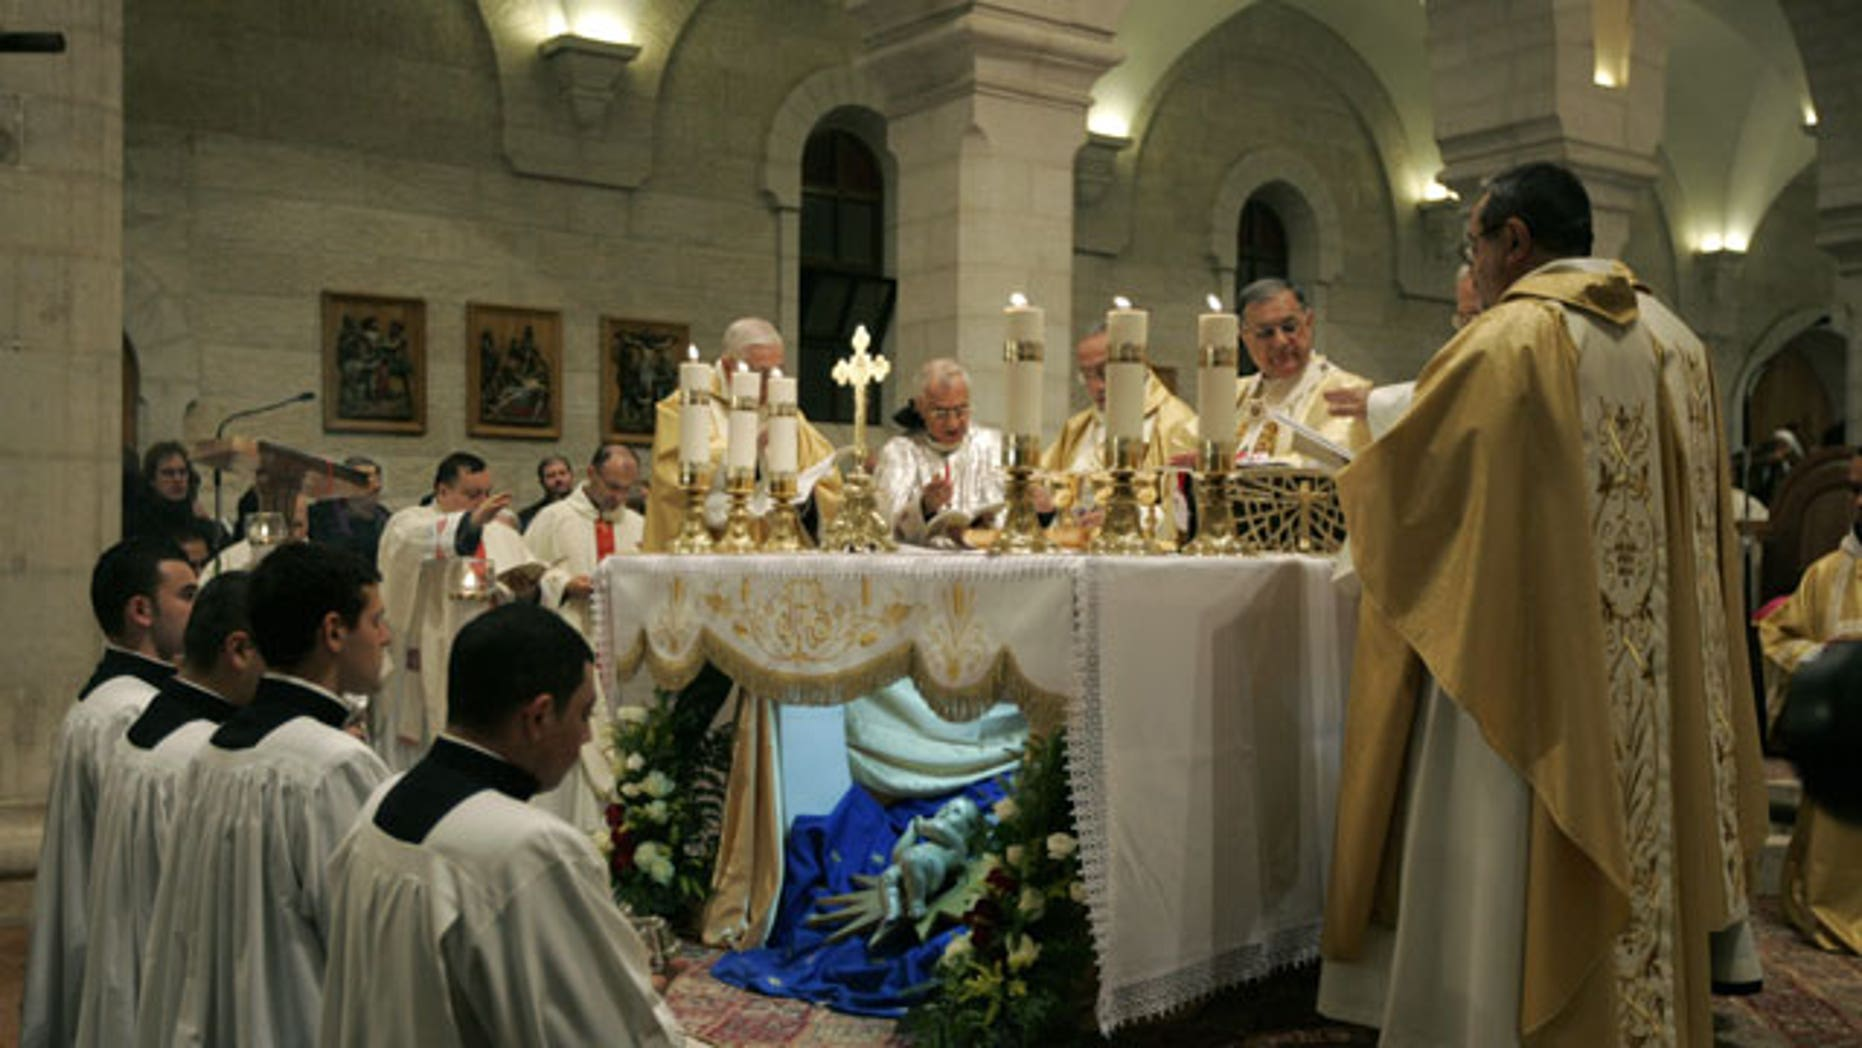 December 25, 2011: Christian priests hold the Christmas midnight Mass at the Church of the Nativity, traditionally believed to be the birthplace of Jesus Christ, in the West Bank town of Bethlehem.